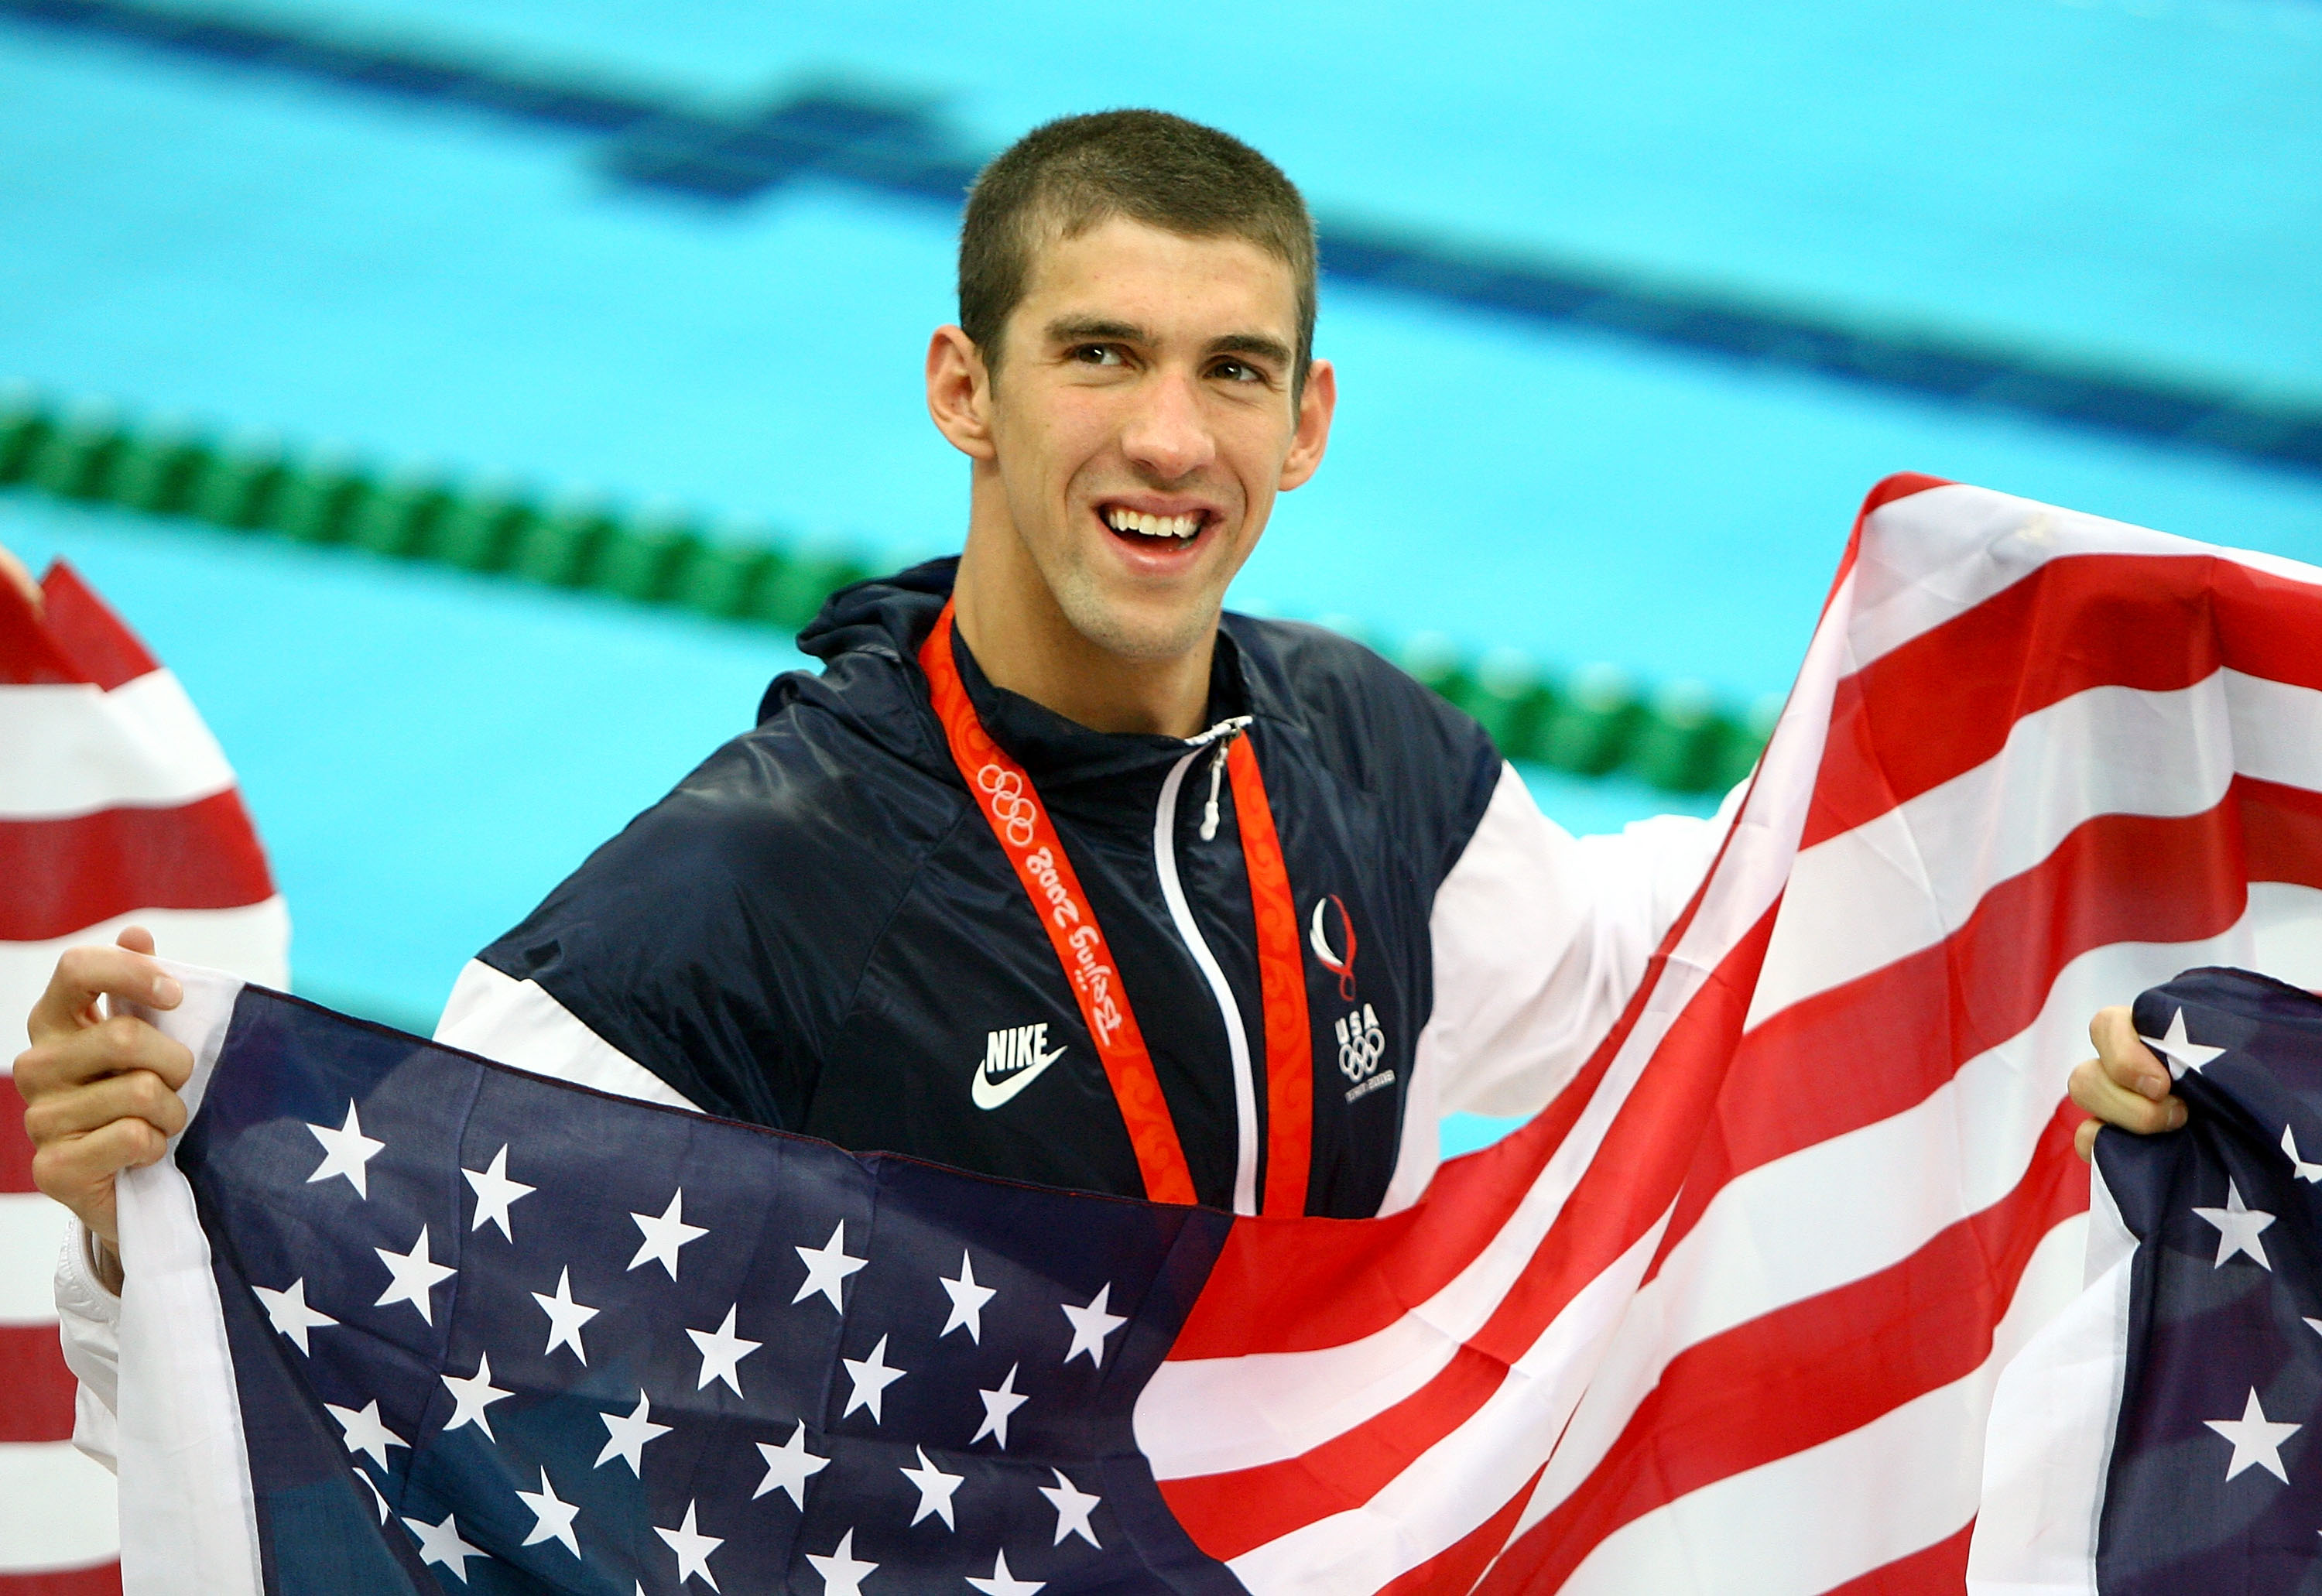 BEIJING - AUGUST 17: Michael Phelps of the United States smiles with the American flag as he wears his eighth gold medal after the Men's 4x100 Medley Relay at the National Aquatics Centre during Day 9 of the Beijing 2008 Olympic Games on August 17, 2008 in Beijing, China. (Photo by Adam Pretty/Getty Images)